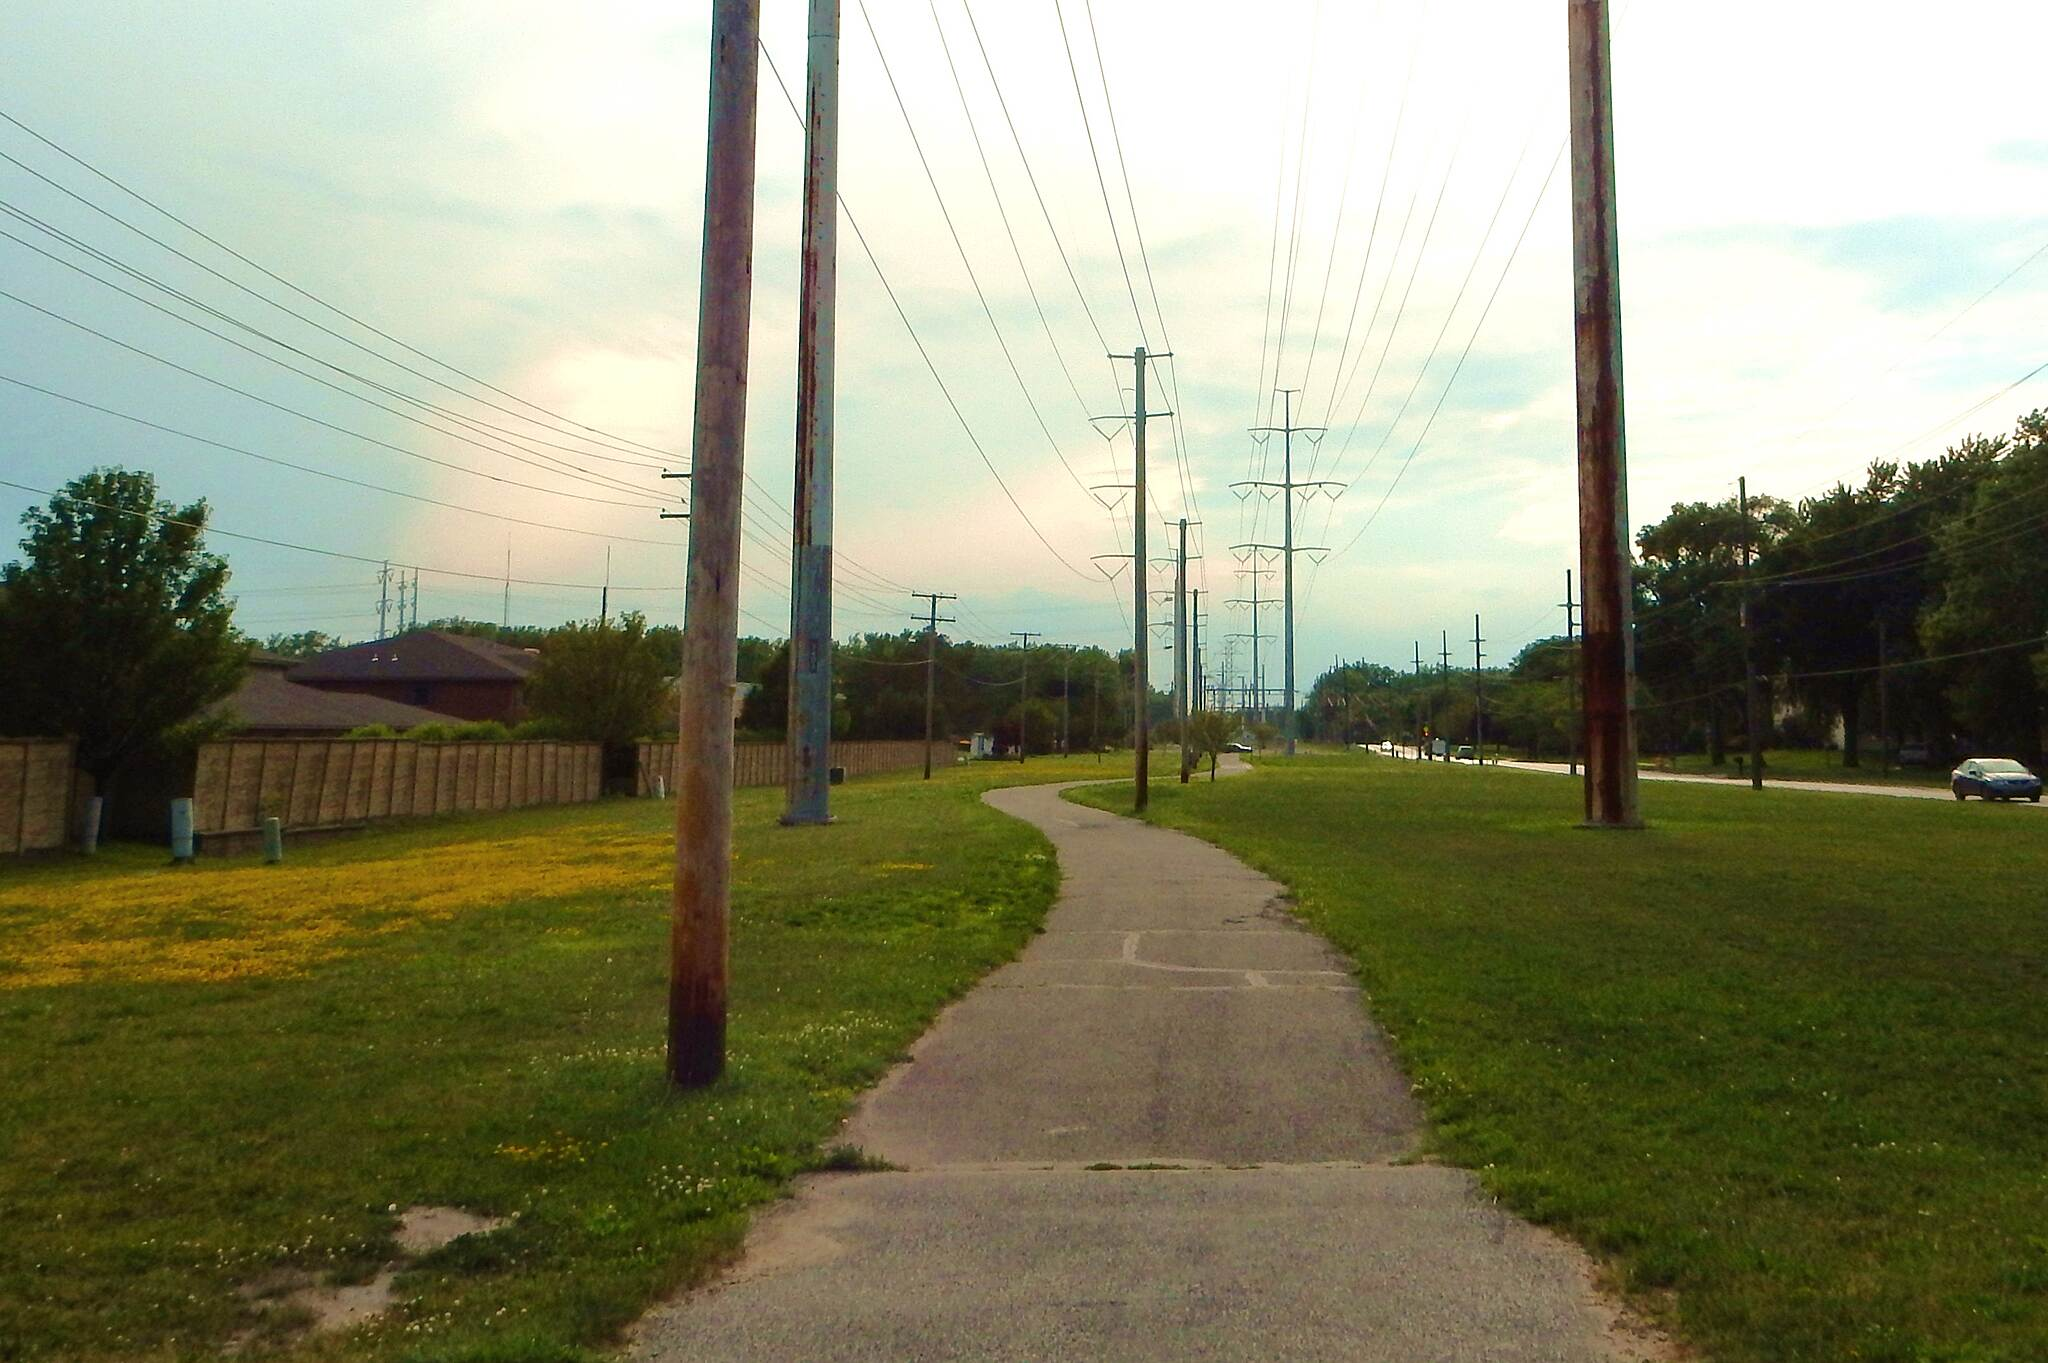 Pennsy Greenway Along Fisher Ave. Here the trail runs westward along Fisher Ave. west of Calumet Ave. Eventually, it veers north taking you into Lansing Ill. Taken 7-5-17.